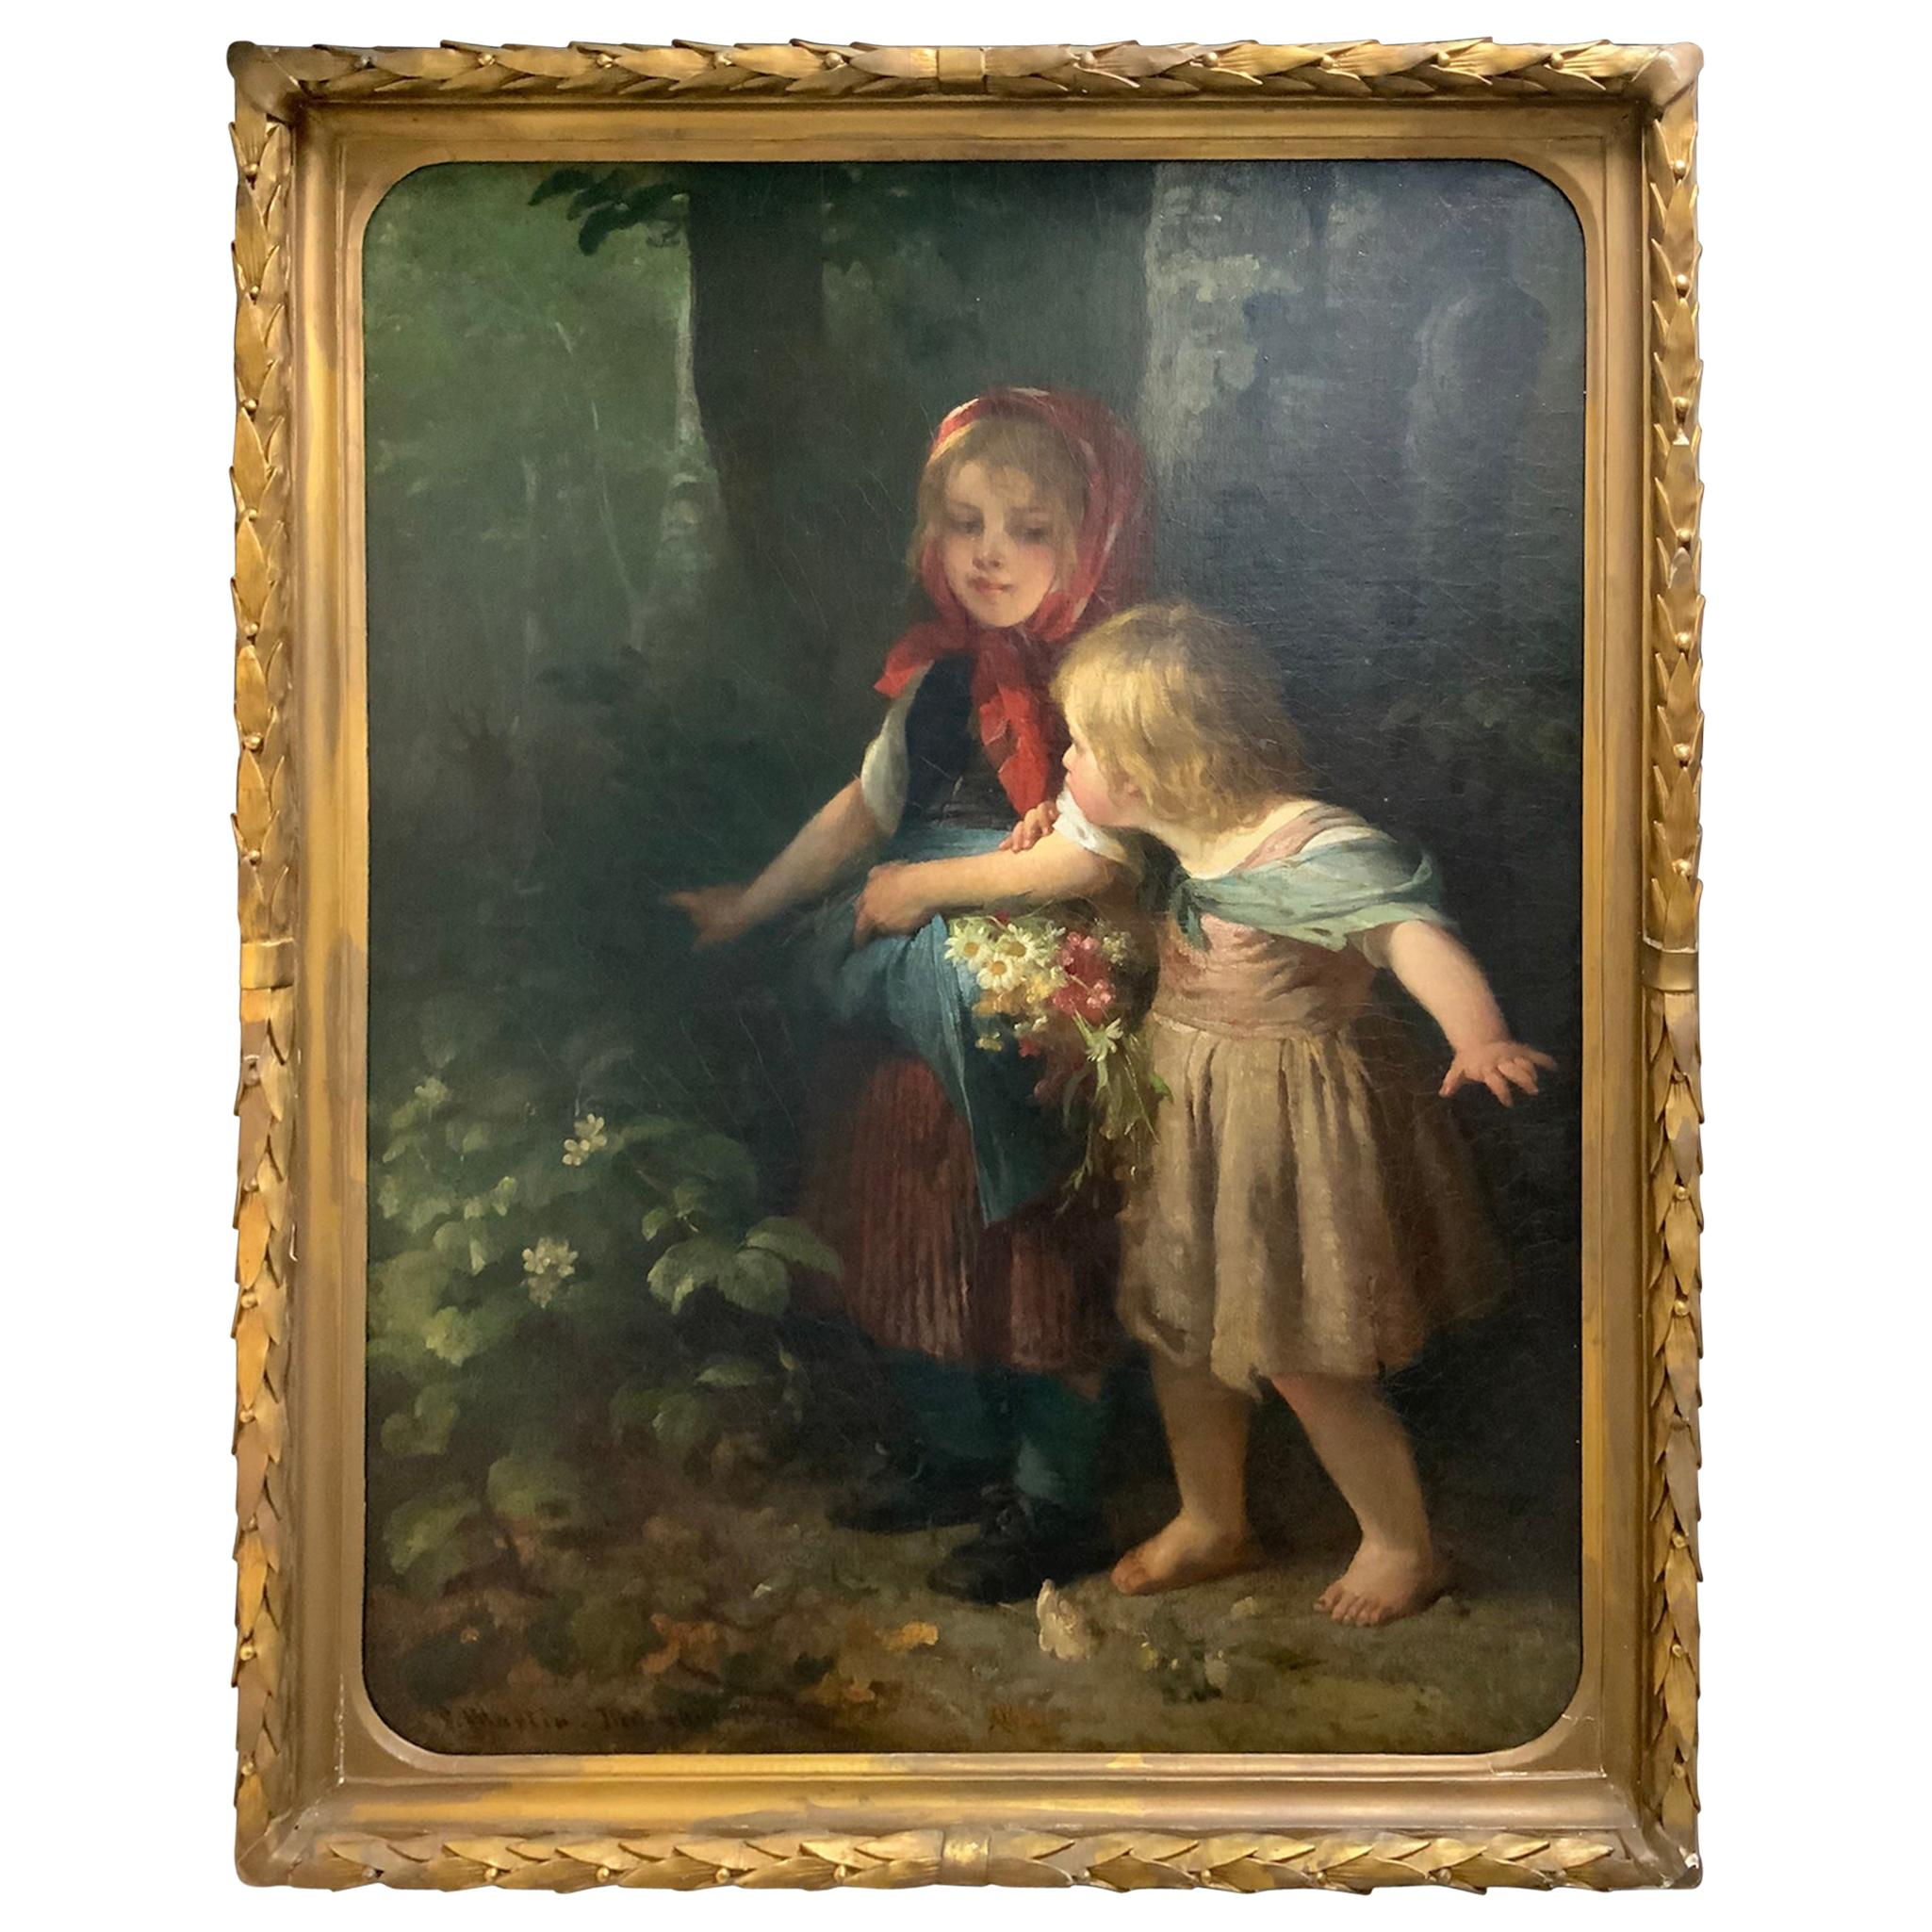 Surprise in the Woods by S. Martin Painting